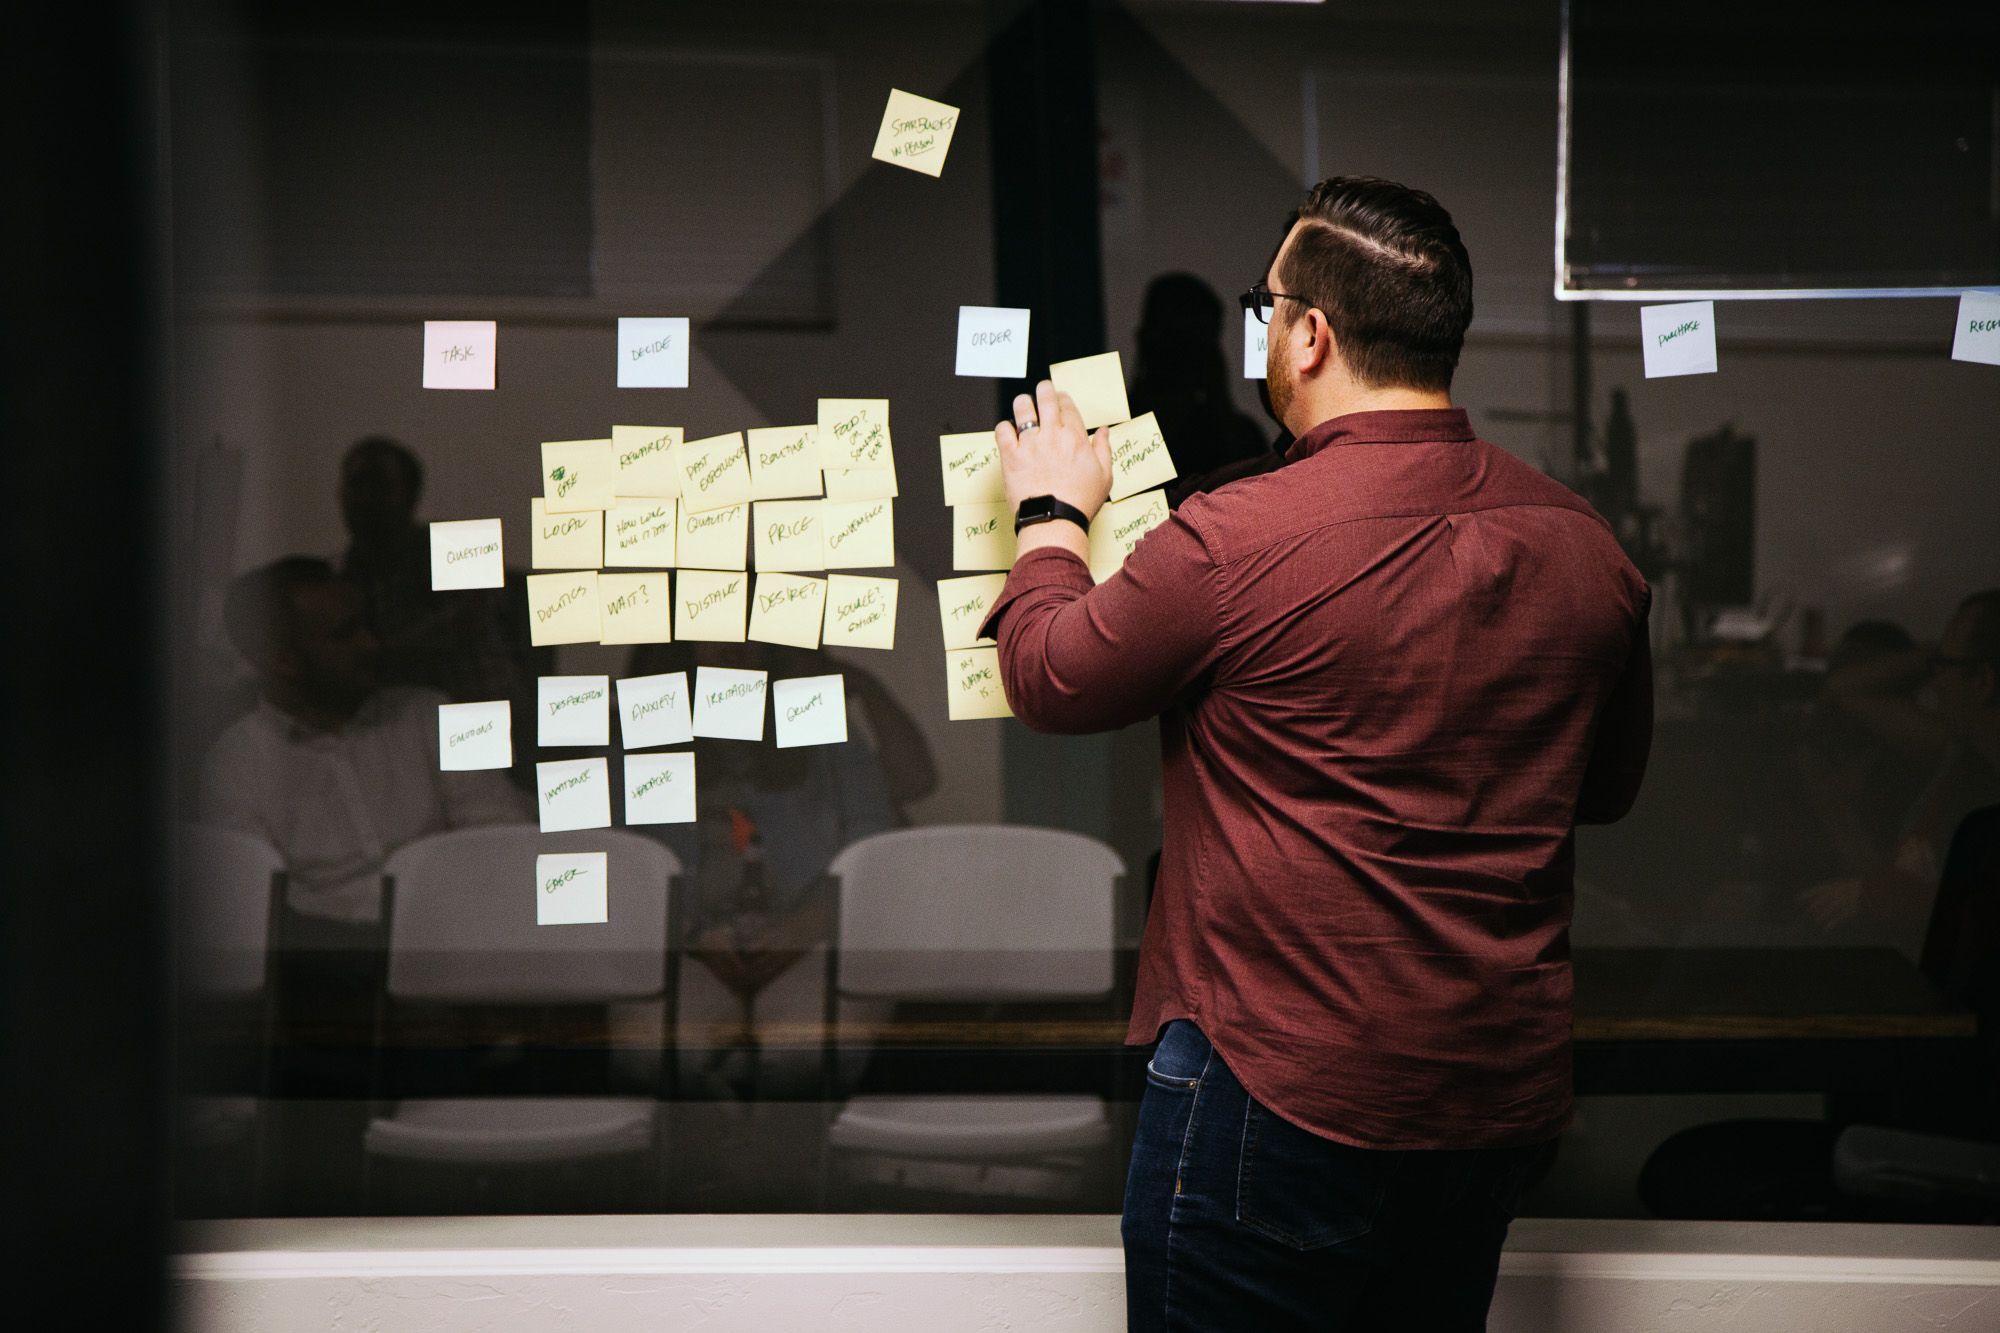 man placing post it notes on window